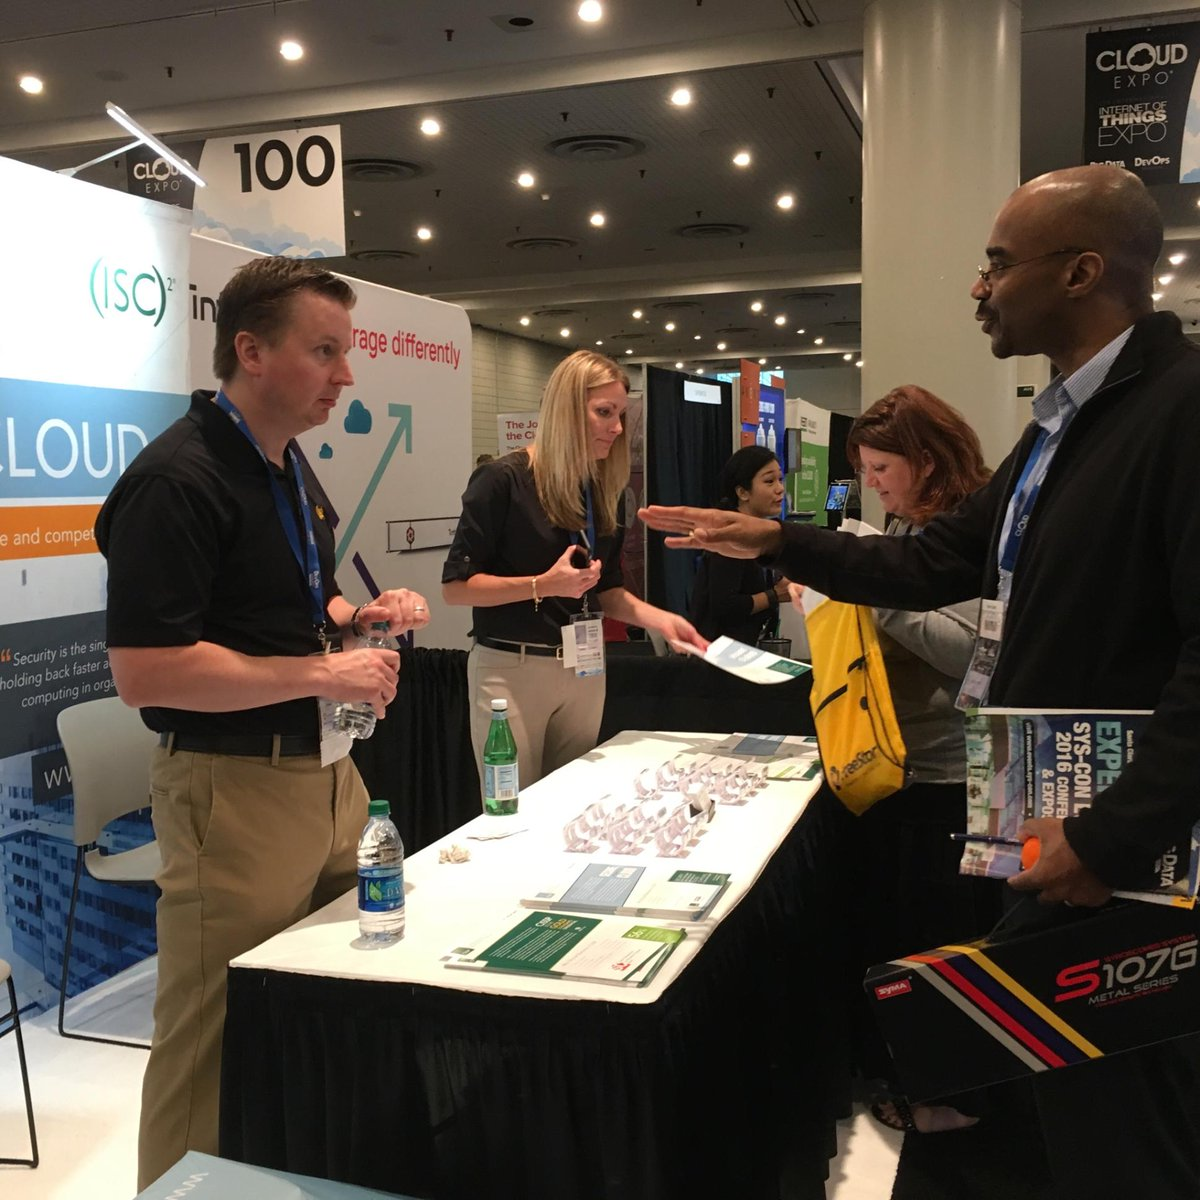 Stop by #ISC2 Booth 232 @CloudExpo NYC to say hi and learn about #CCSP https://t.co/qK9akRZfu5